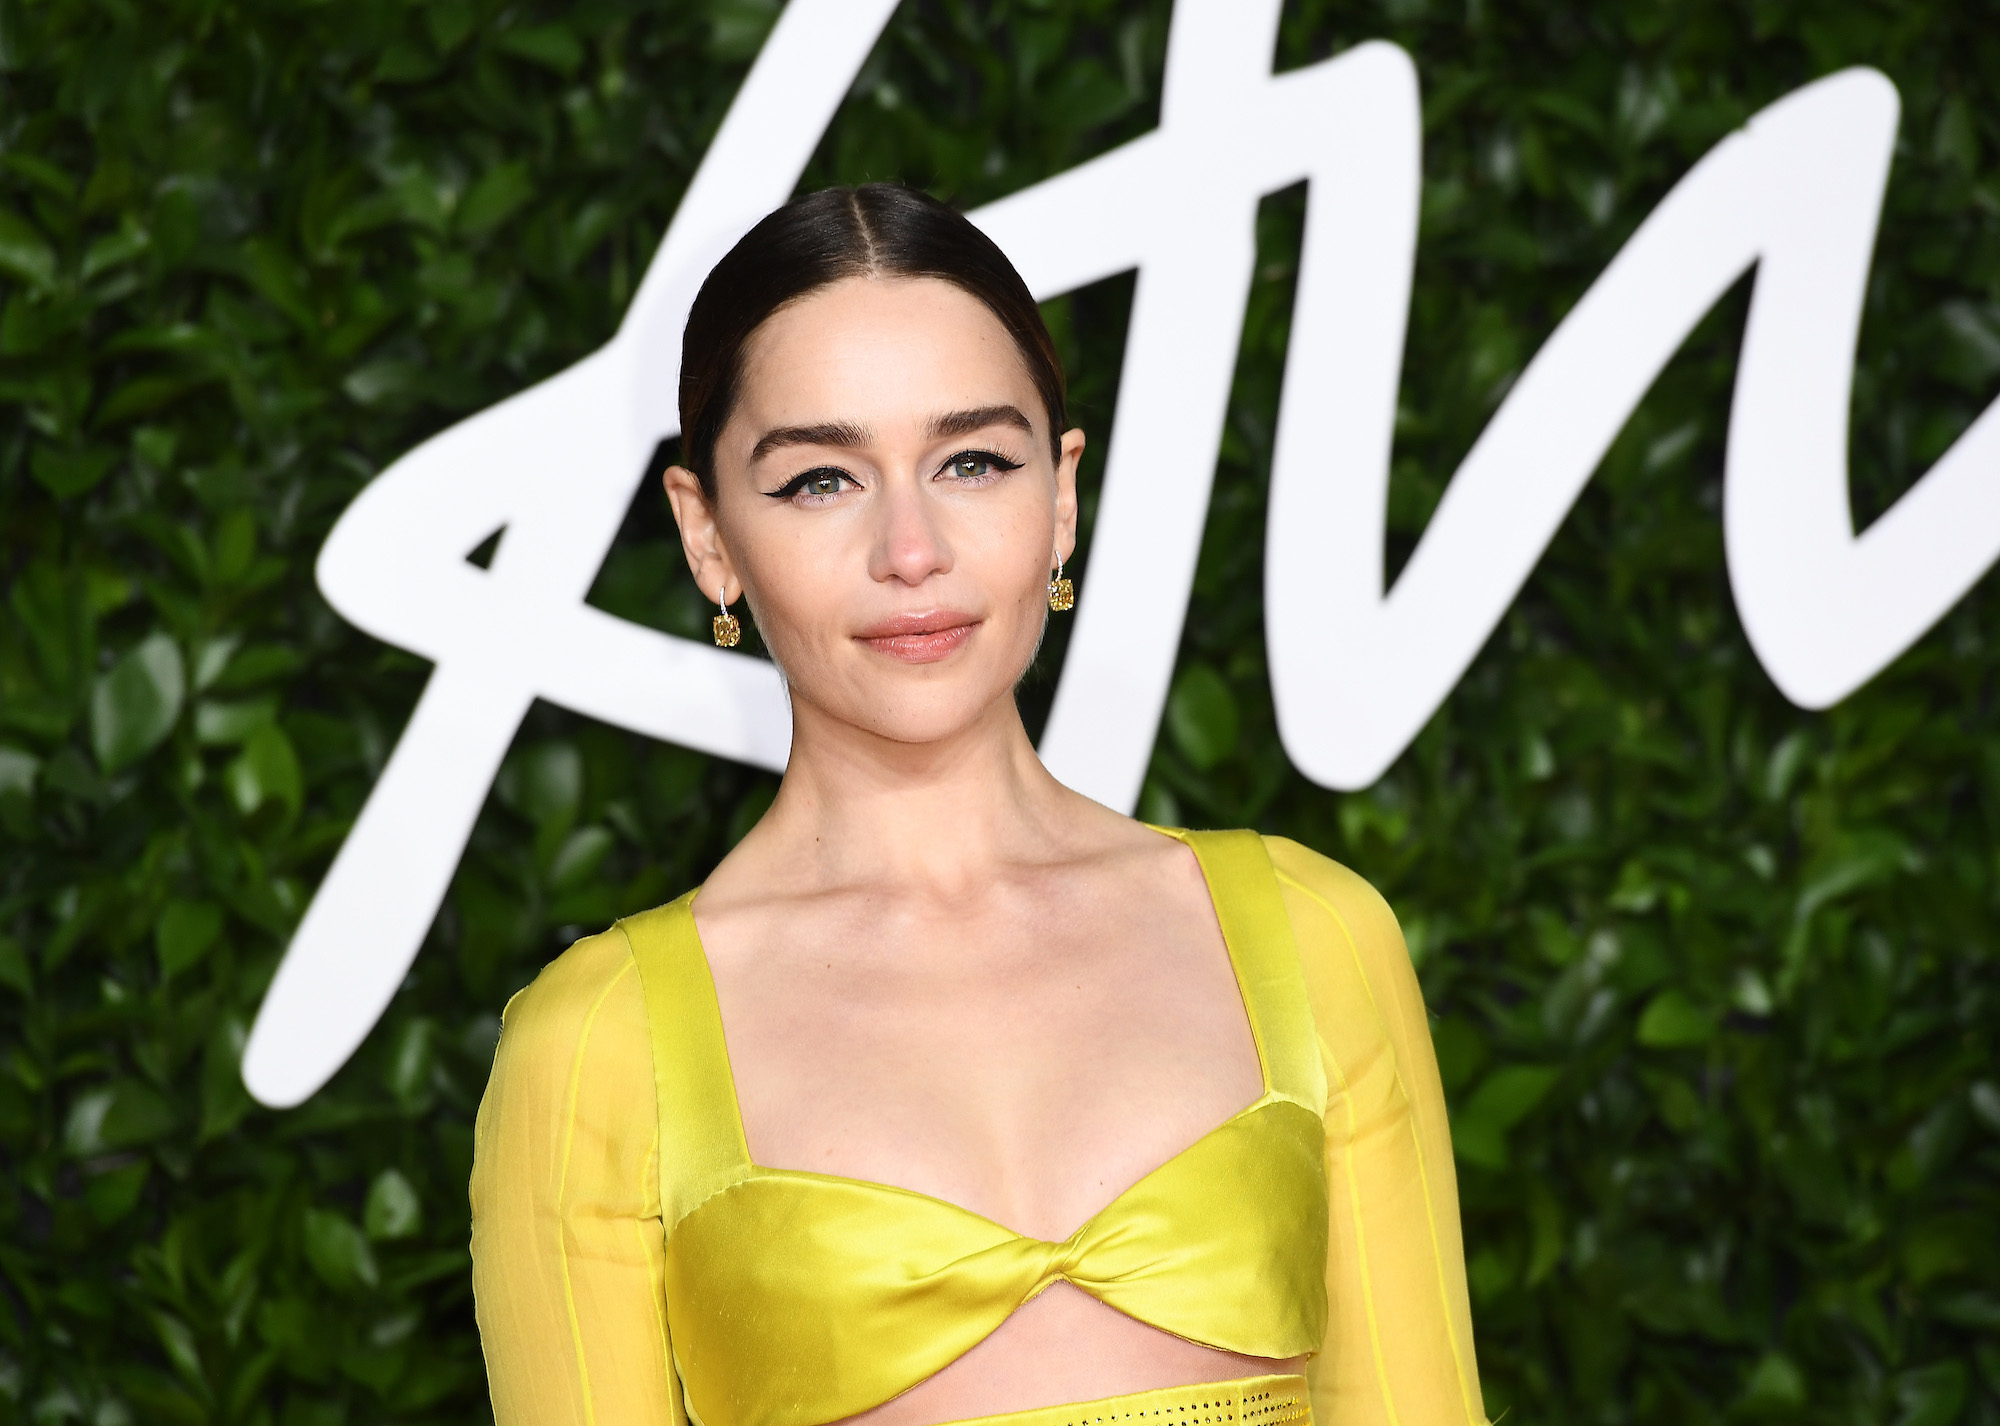 Emilia Clarke at The Fashion Awards 2019 held at Royal Albert Hall on Dec. 02, 2019.